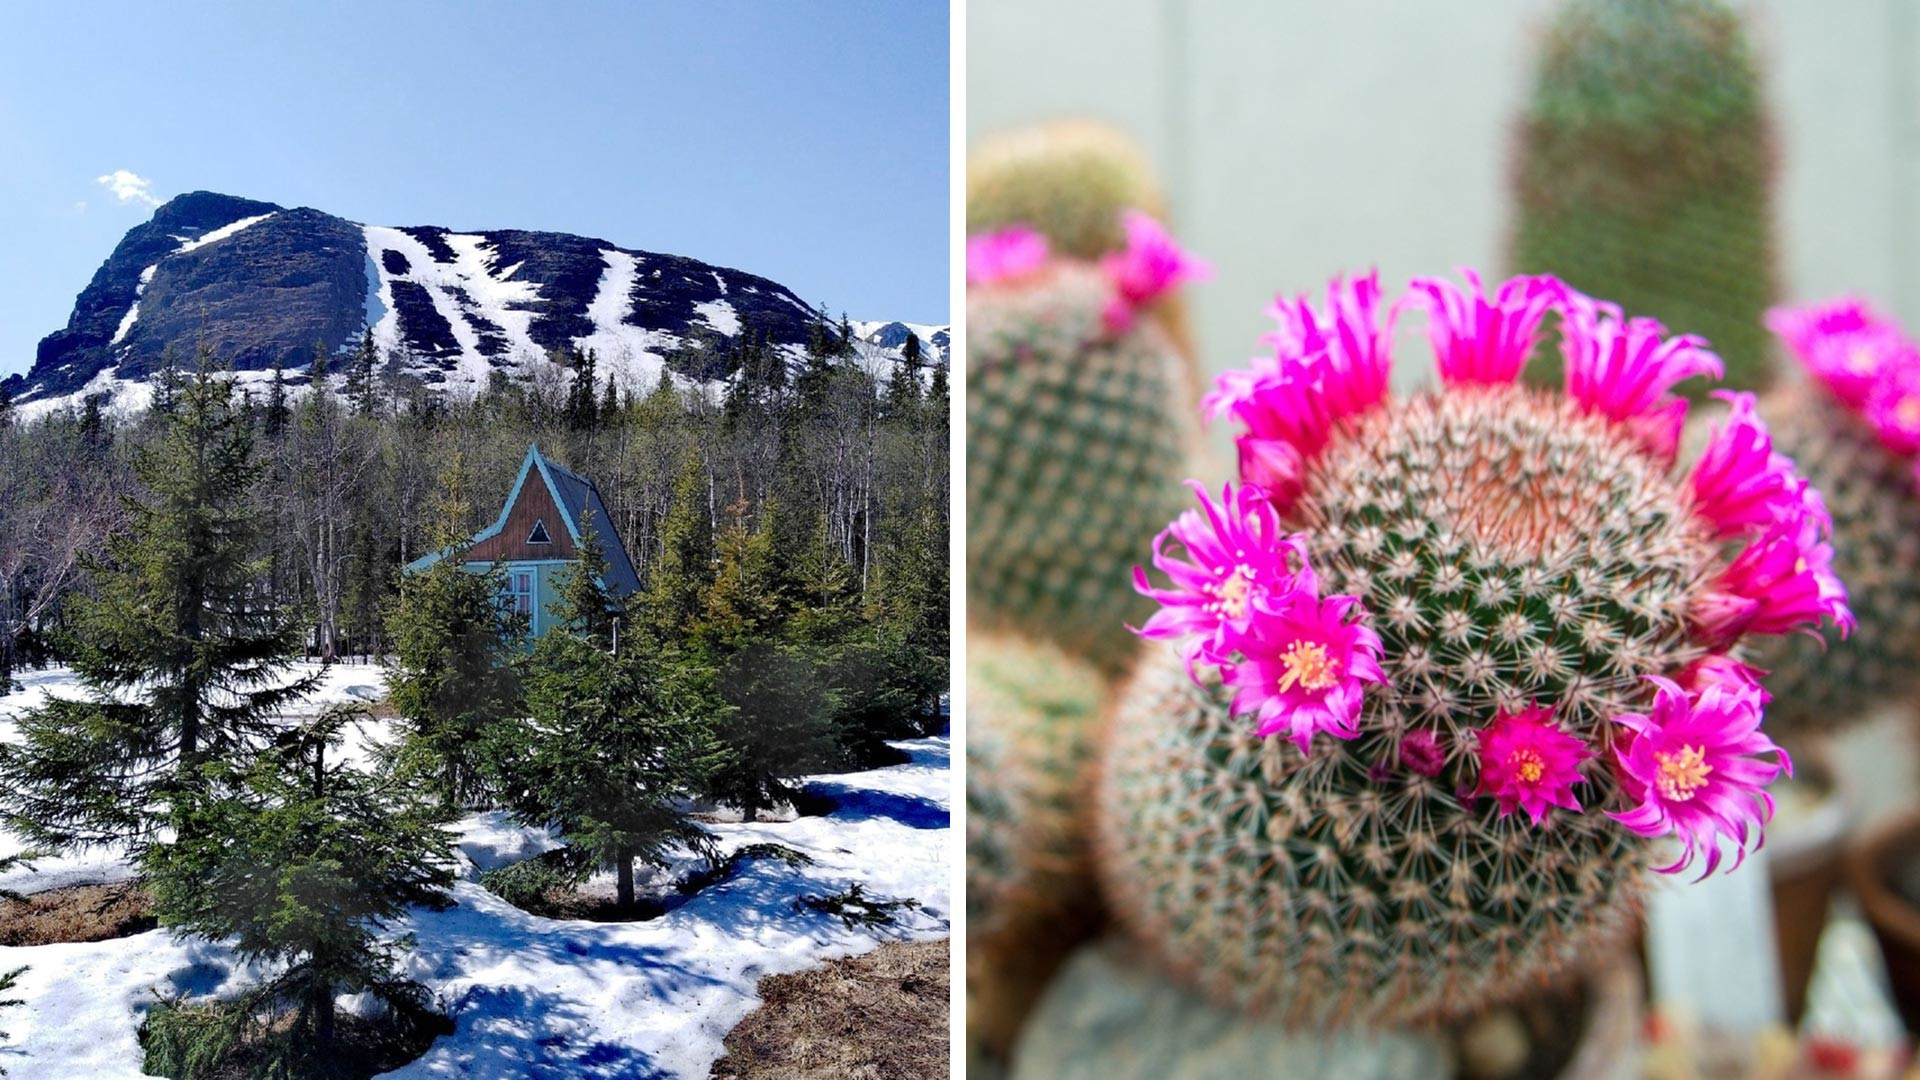 Can you imagine a cactus in the Arctic? But it's here!